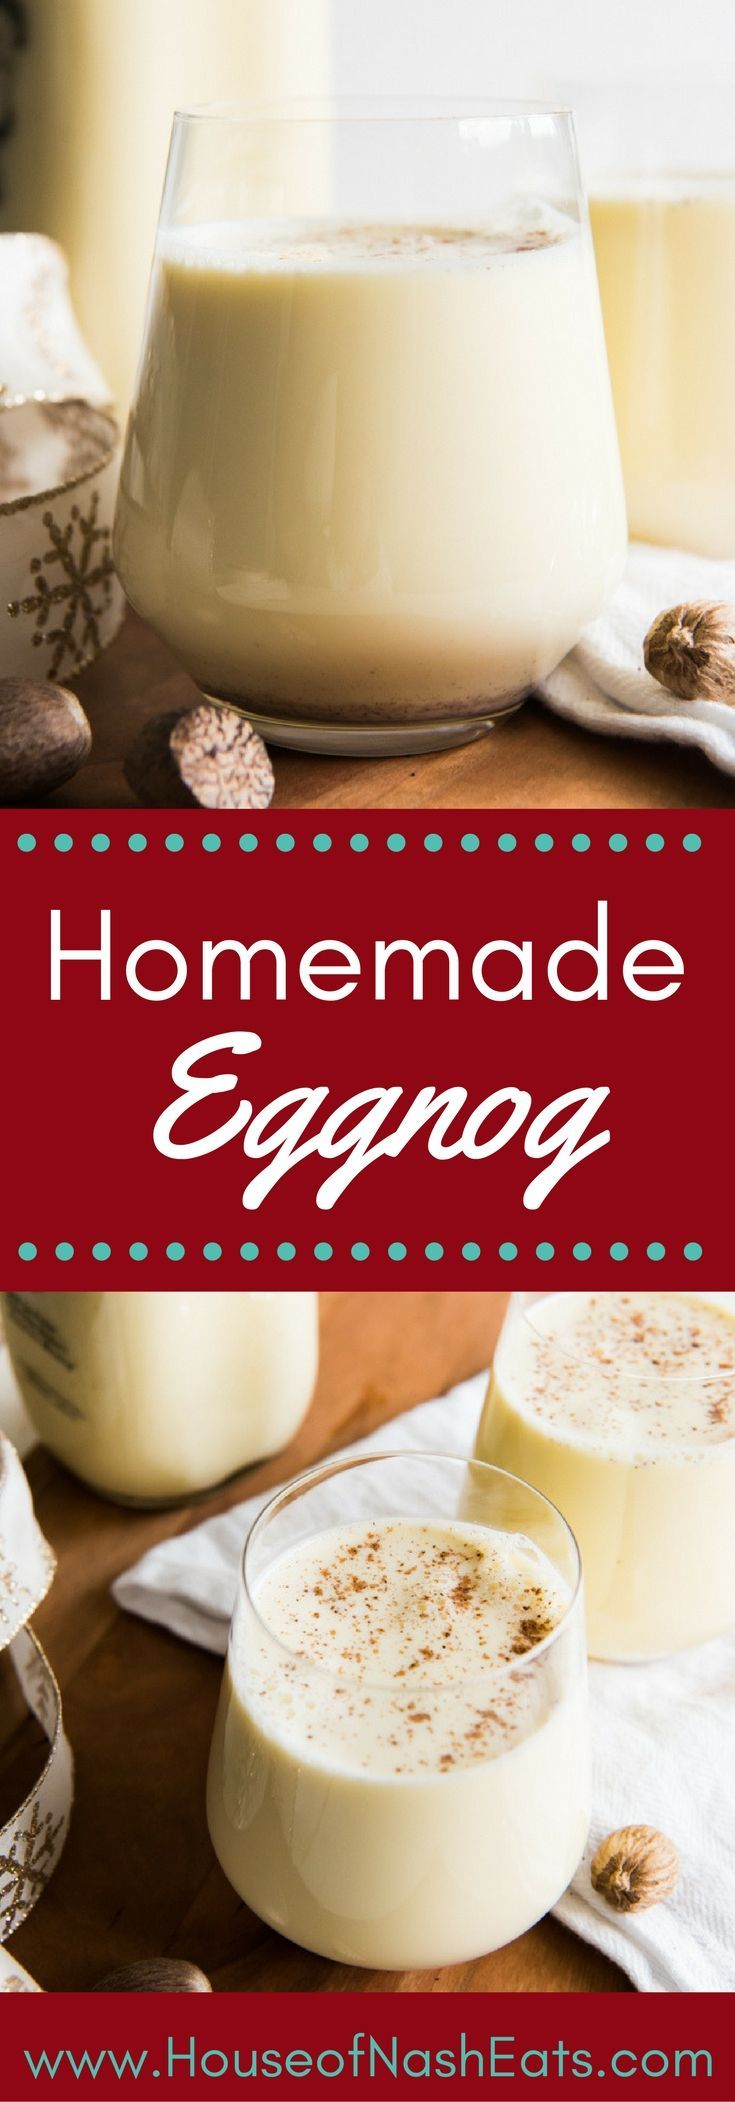 Light, creamy, and spiced with freshly grated nutmeg, this non-alcoholic Homemade Eggnog is so, SO much better than the store-bought variety that shows up in cartons each year around November or December.  It is both a beloved and beleaguered holiday beverage with a fascinating history.